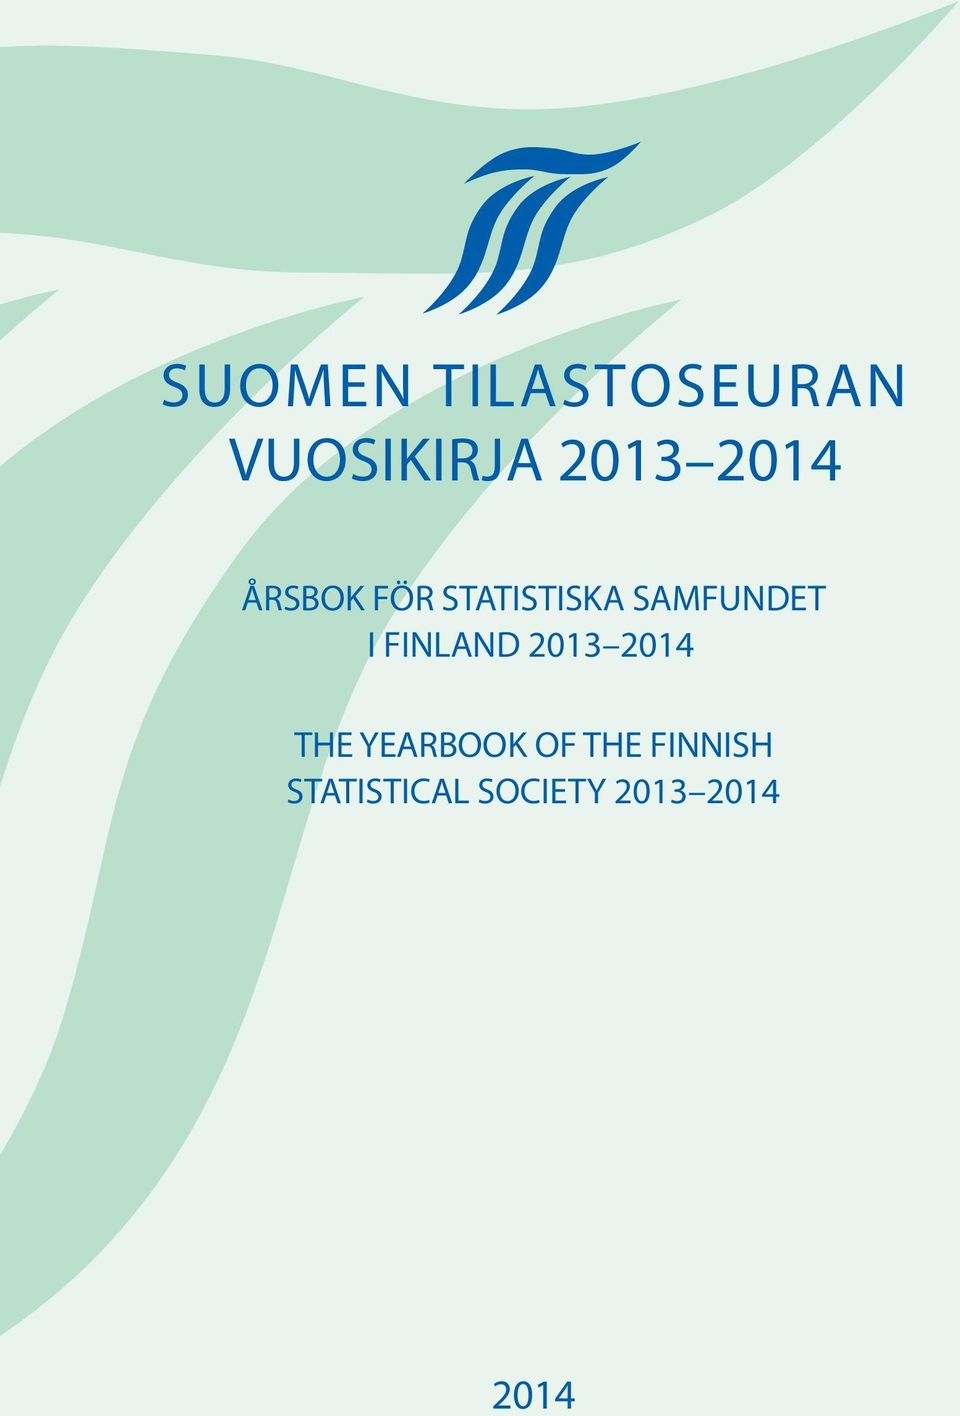 FINLAND 2013 2014 THE YEARBOOK OF THE